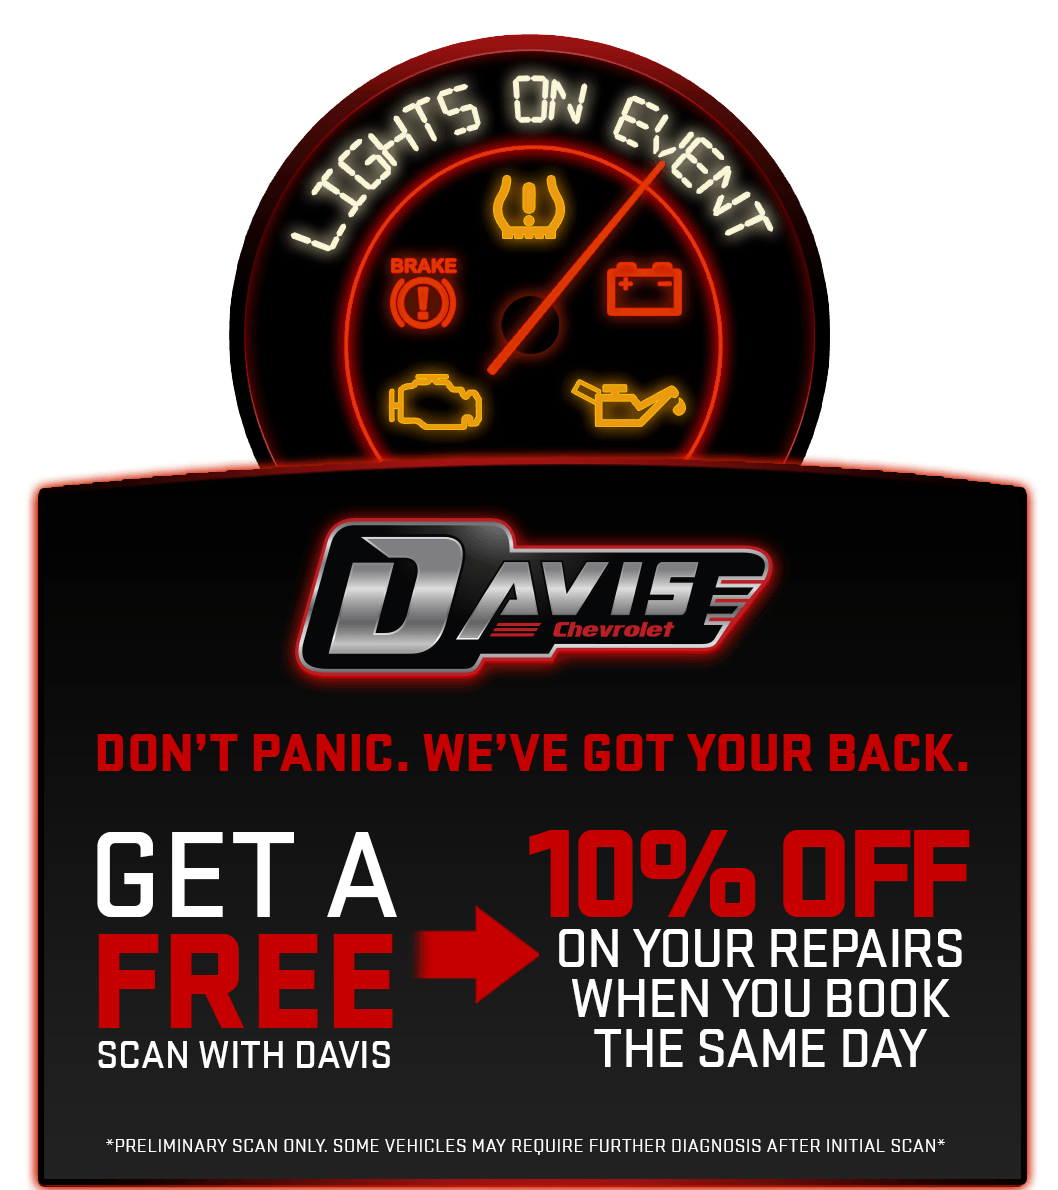 Lights on Event, Get a FREE Scan as Davis Chevrolet Airdrie. Book your service the same day and save 10% on your service!